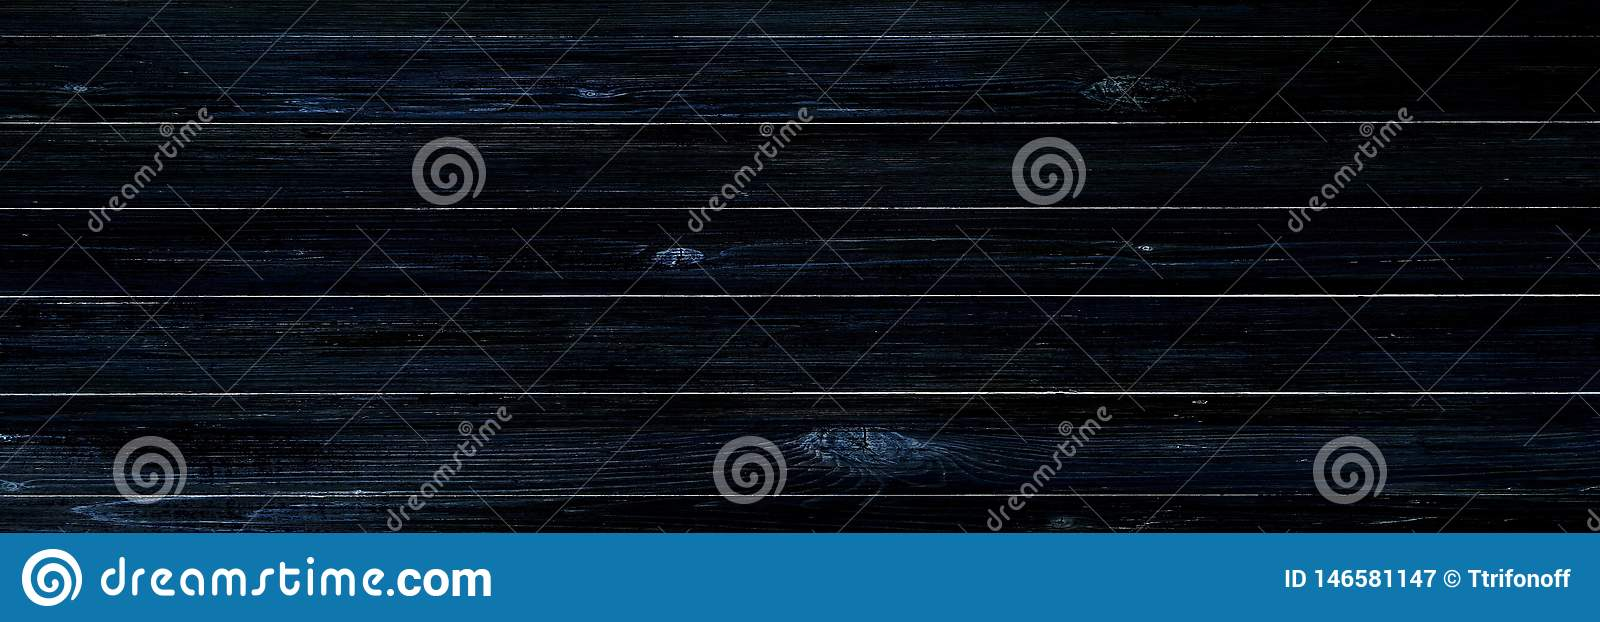 Black wood texture, dark wooden abstract background